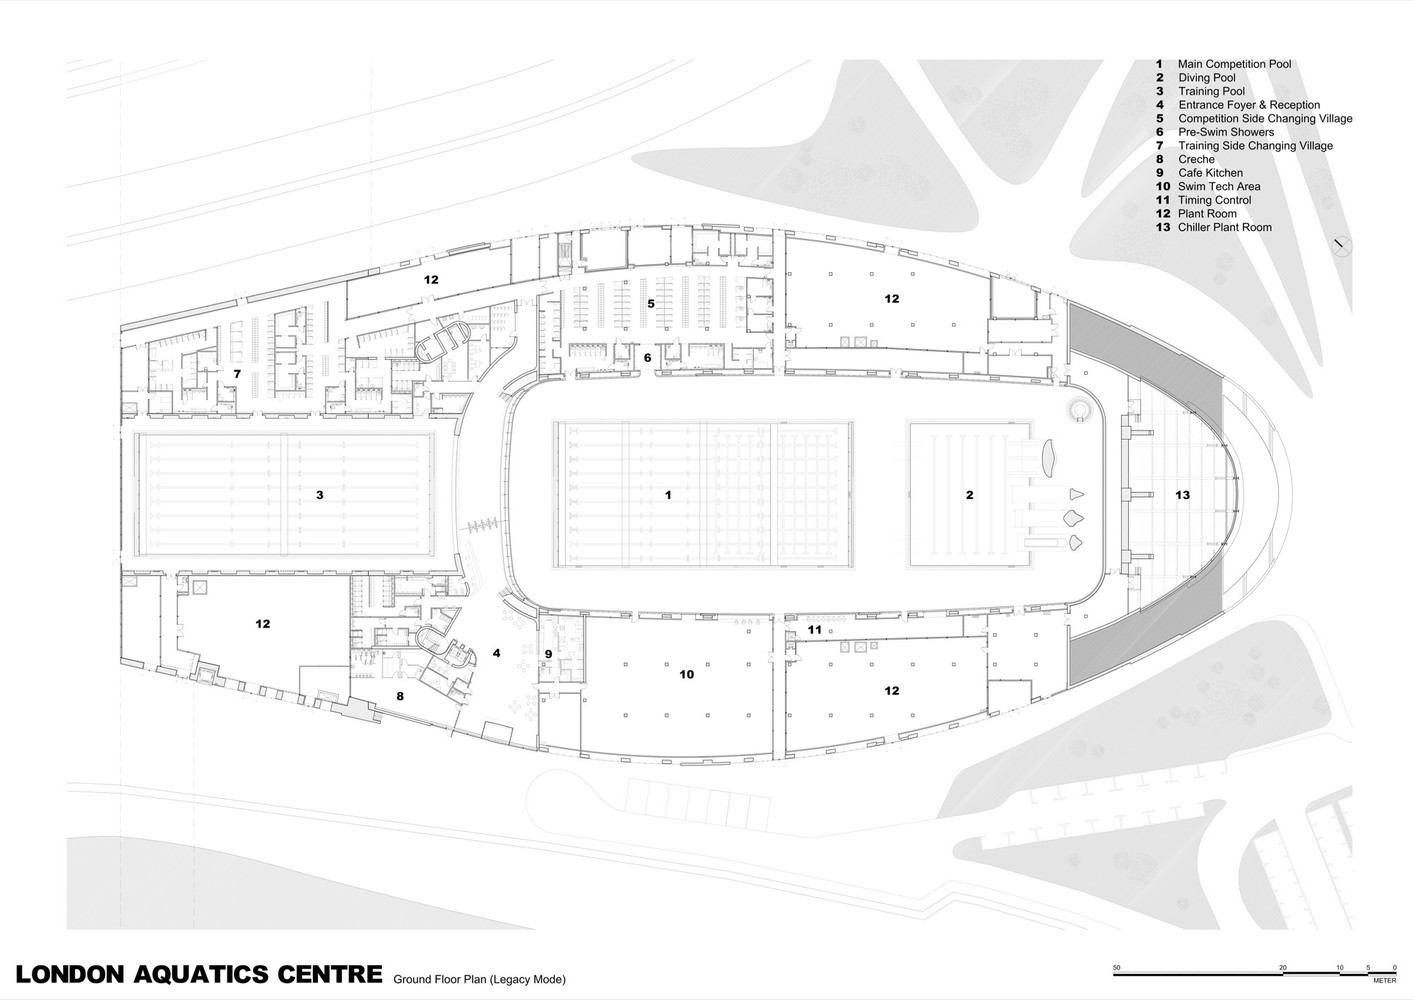 olympic swimming pool 2012. London Aquatics Centre For 2012 Summer Olympics,Ground Floor Plan (Legacy Mode) Olympic Swimming Pool I